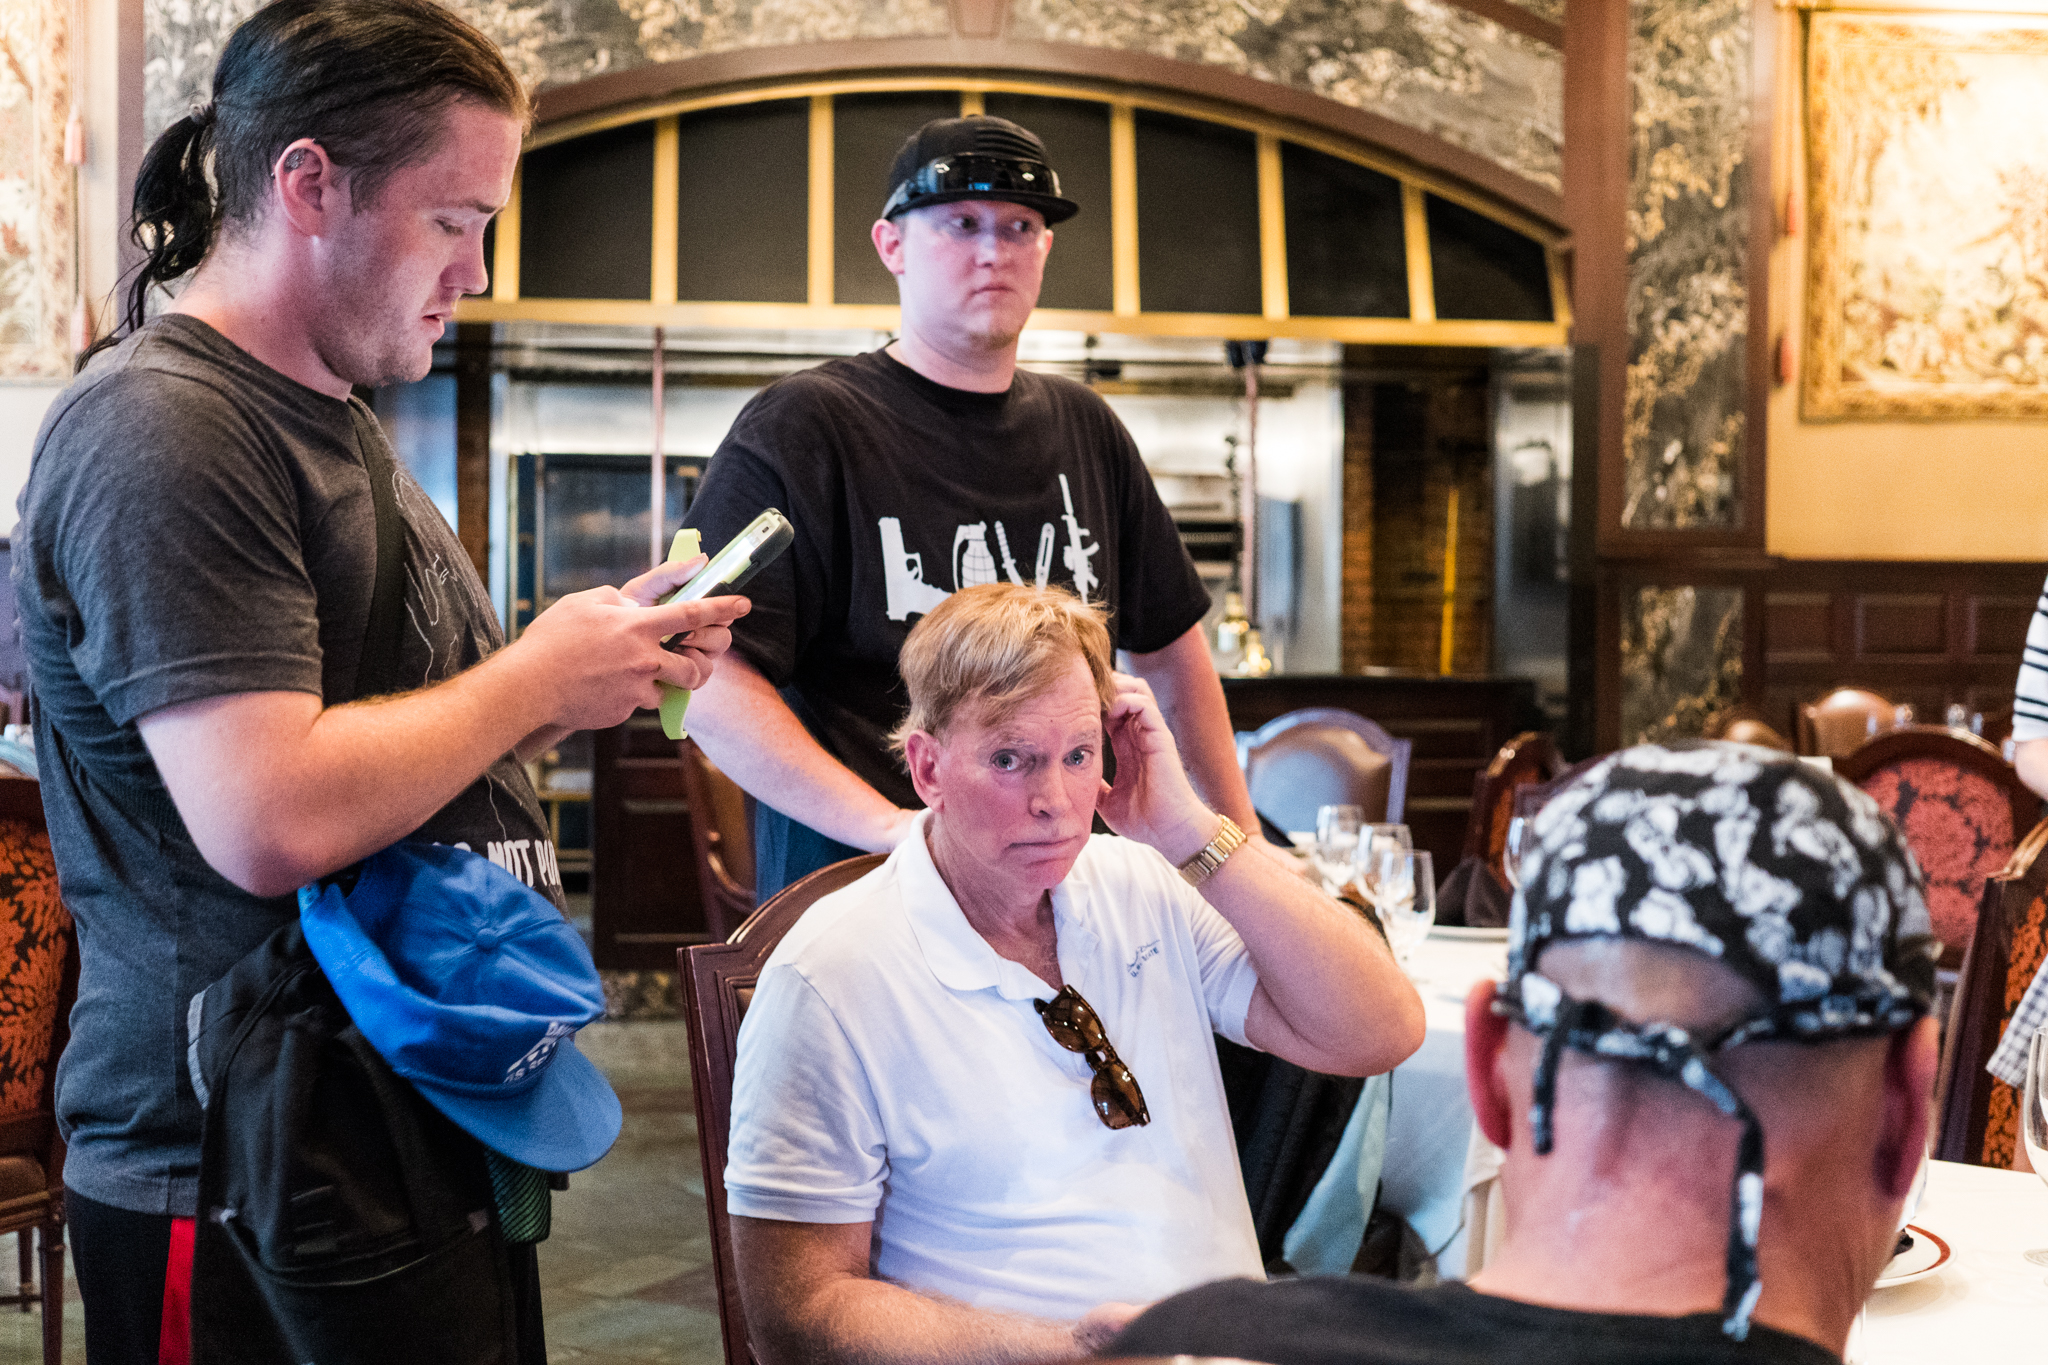 David Duke after escaping into the Rib Room at the Omni Hotel in the French Quarter.